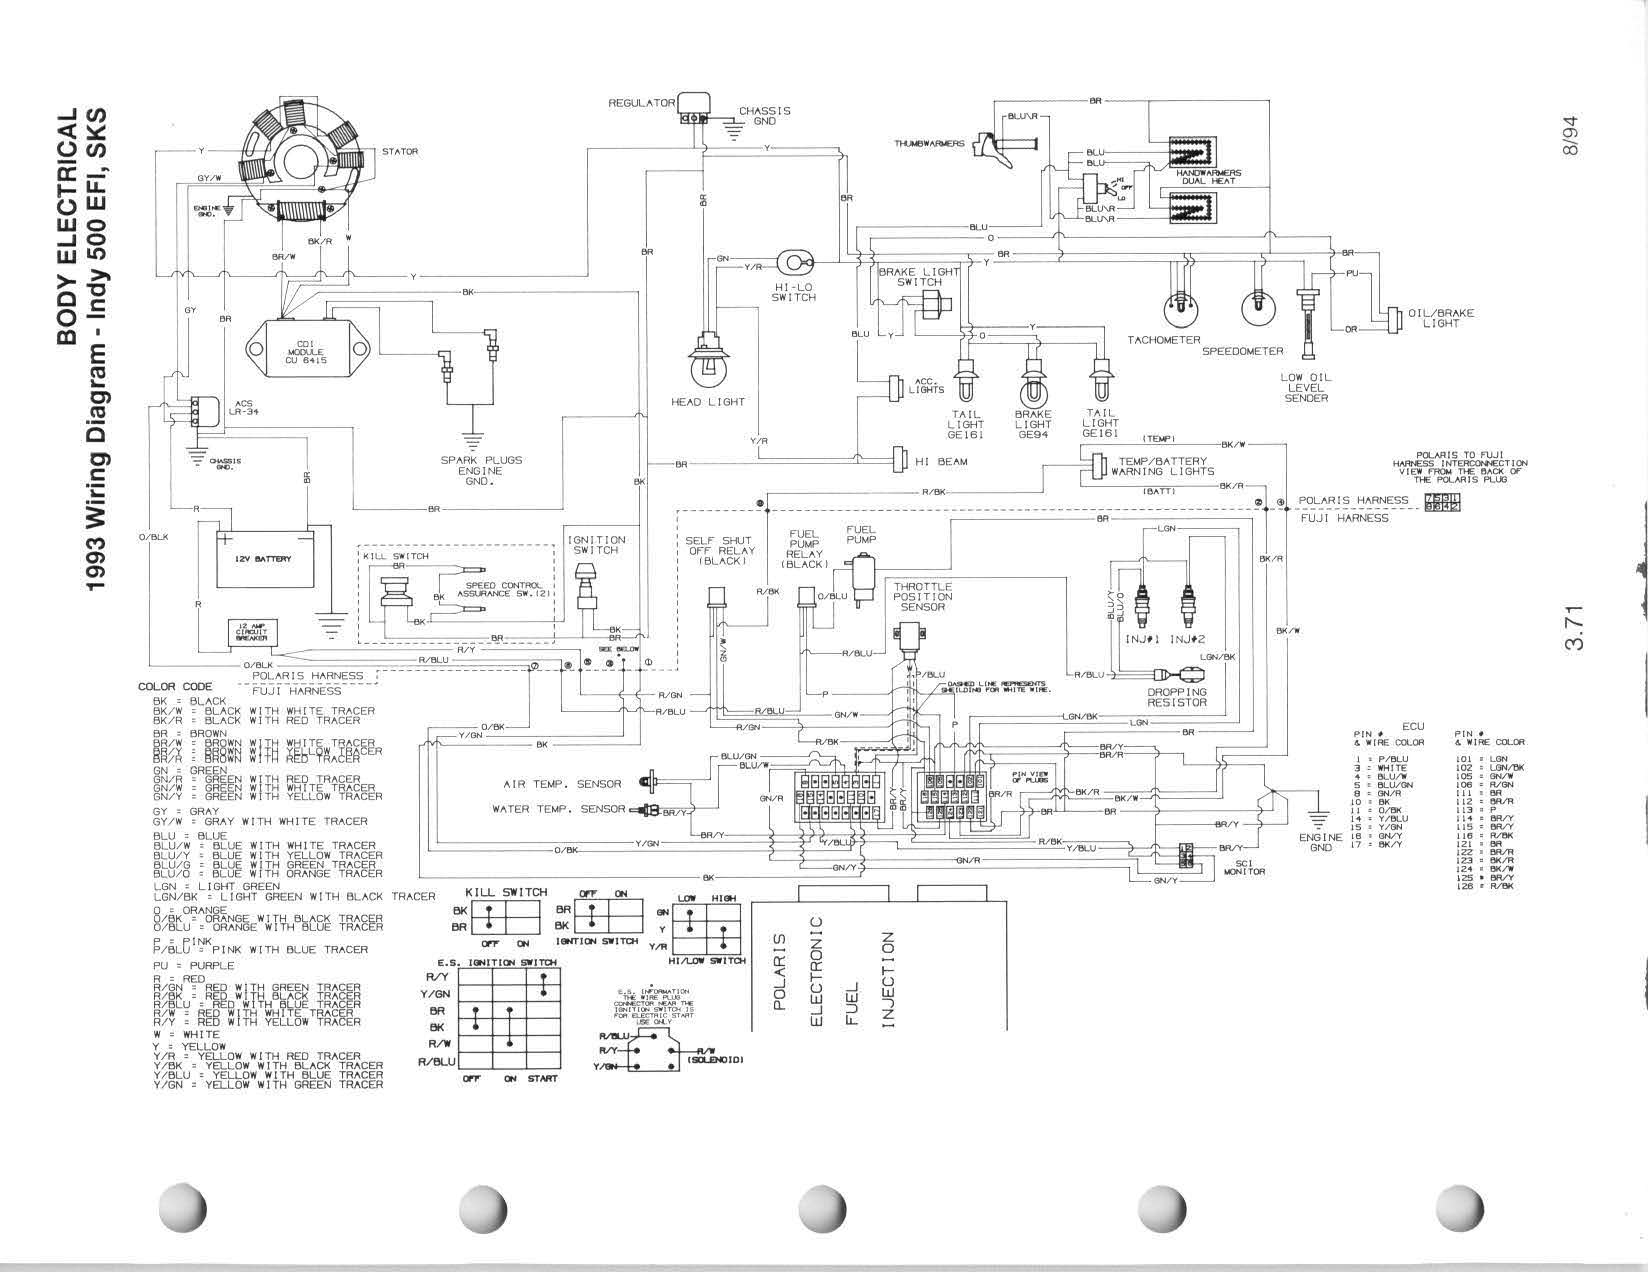 Polaris Ranger 500 Wiring Diagram -Chevy Celebrity Radio Wiring Diagram |  Begeboy Wiring Diagram SourceBegeboy Wiring Diagram Source